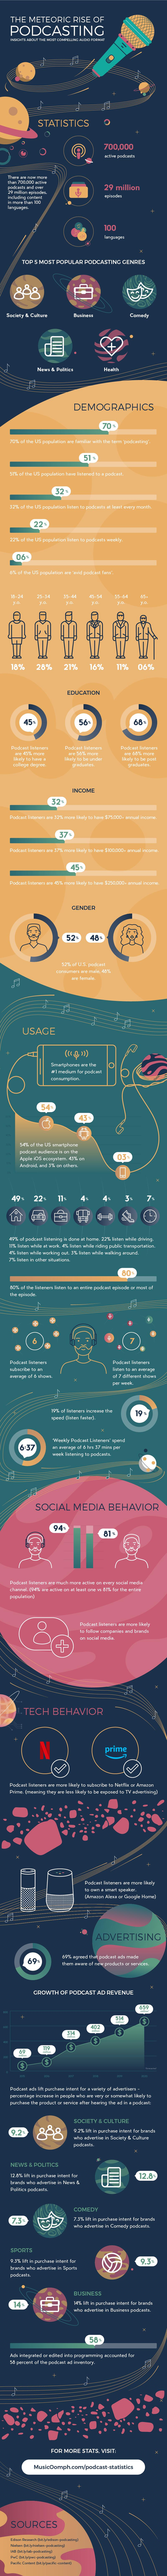 Podcast Statistics Infographic by MusicOomph.com